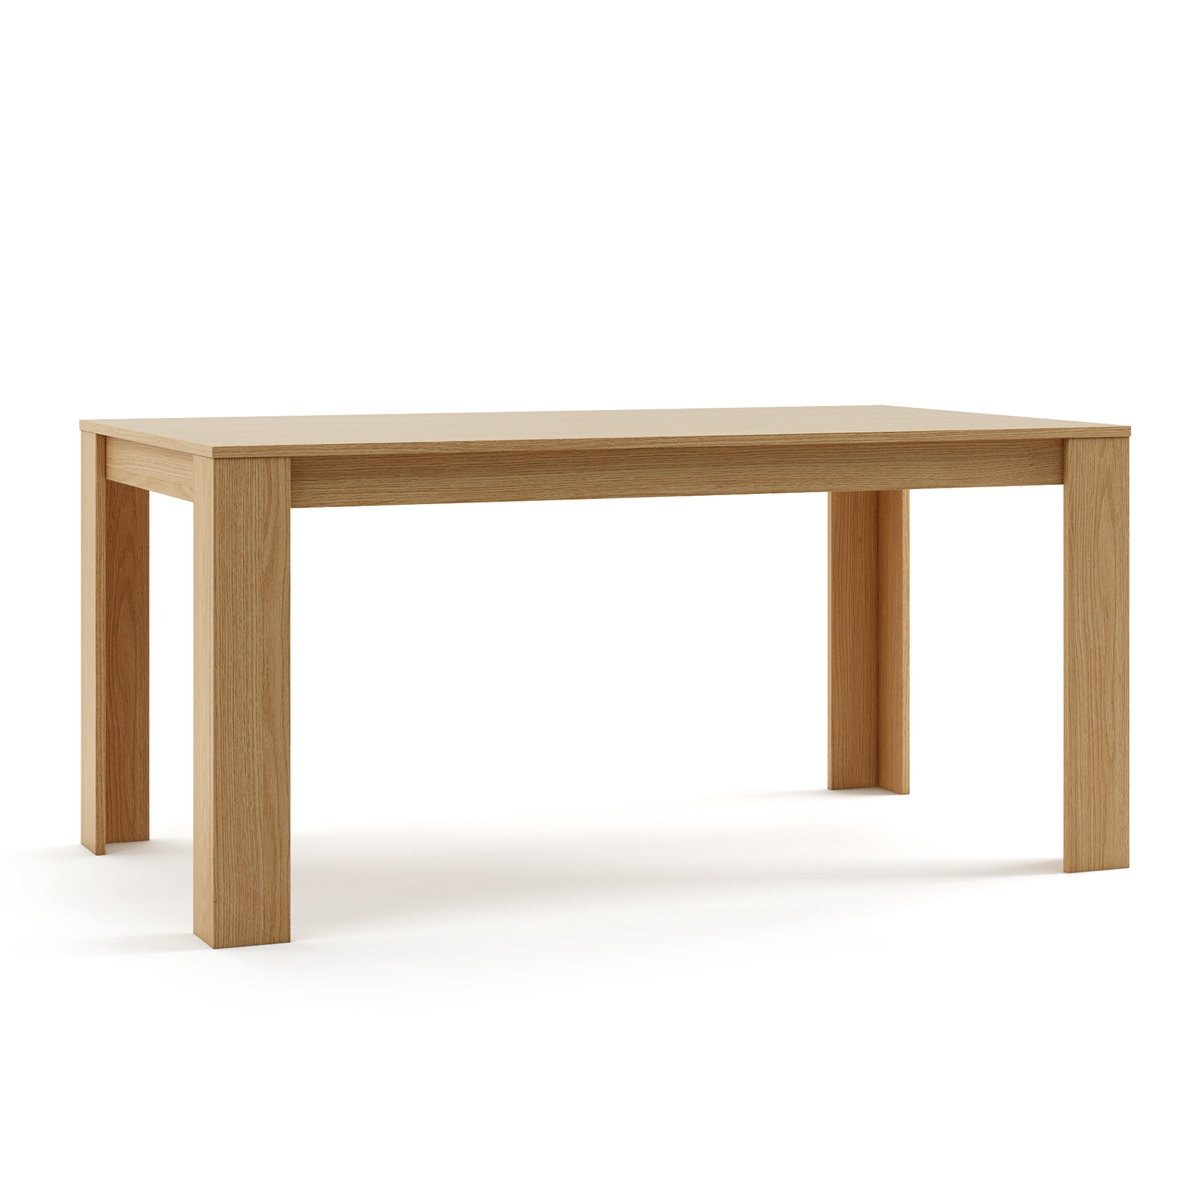 MC Haus-Table Rectangular Salon Dining Room TROTTER Natural Wood 160x90x75 Cm